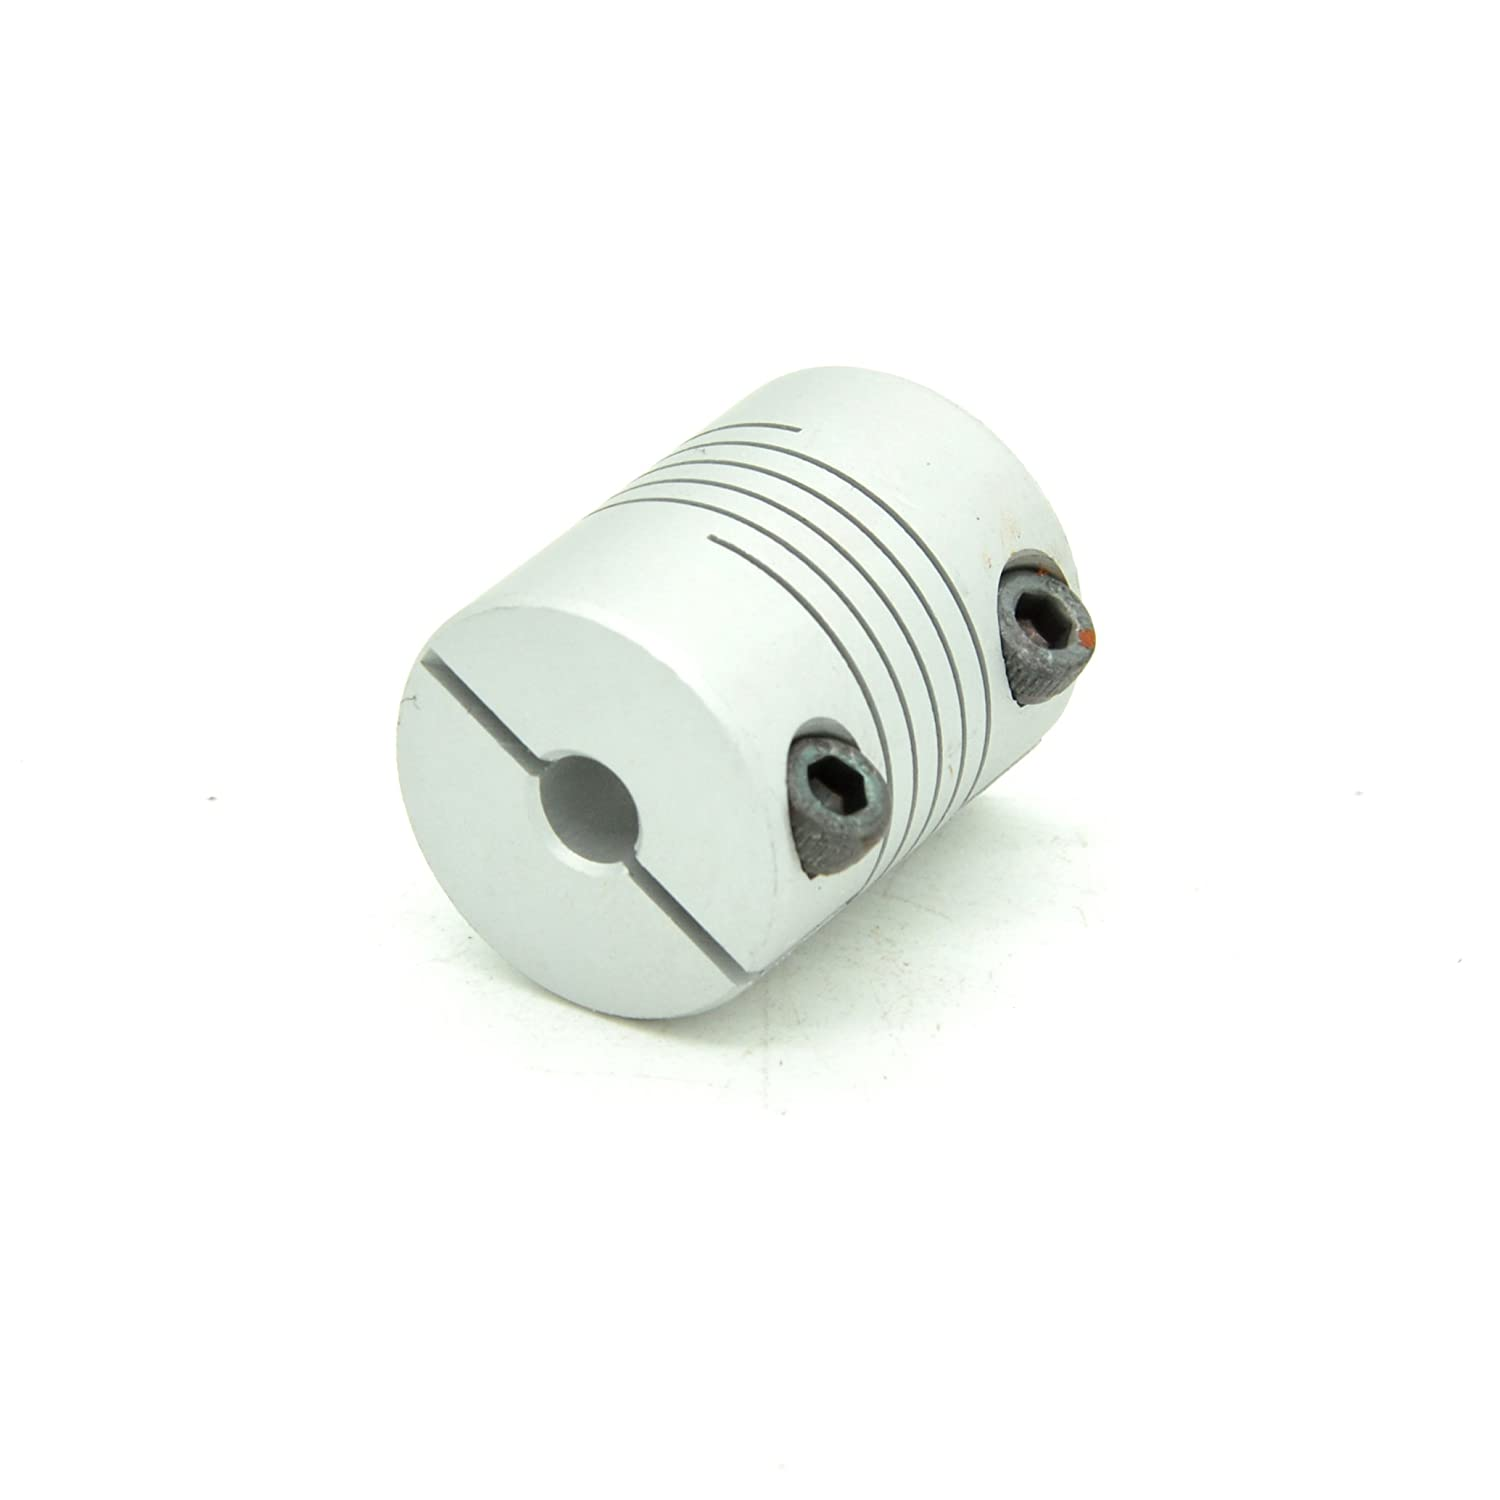 RobotDigg FCCD20L25-5-10 Flexible Coupling 5mm to 10mm Aluminum Alloy Beam Coupling Silver Color Flexible Clamping Coupler Pack of 4pcs